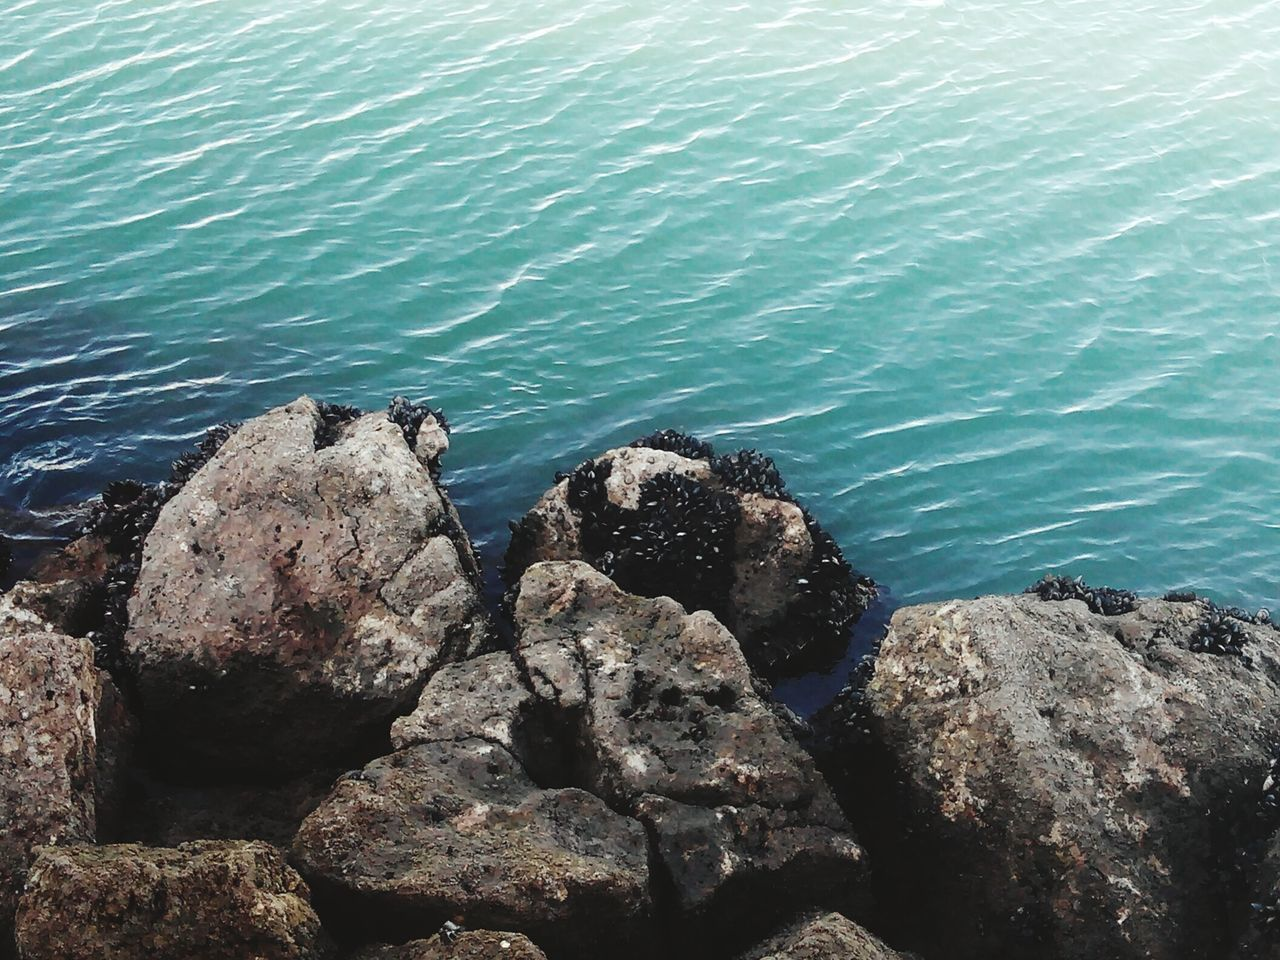 sea, rock - object, water, nature, no people, day, outdoors, high angle view, animals in the wild, beauty in nature, beach, animal themes, sea life, mammal